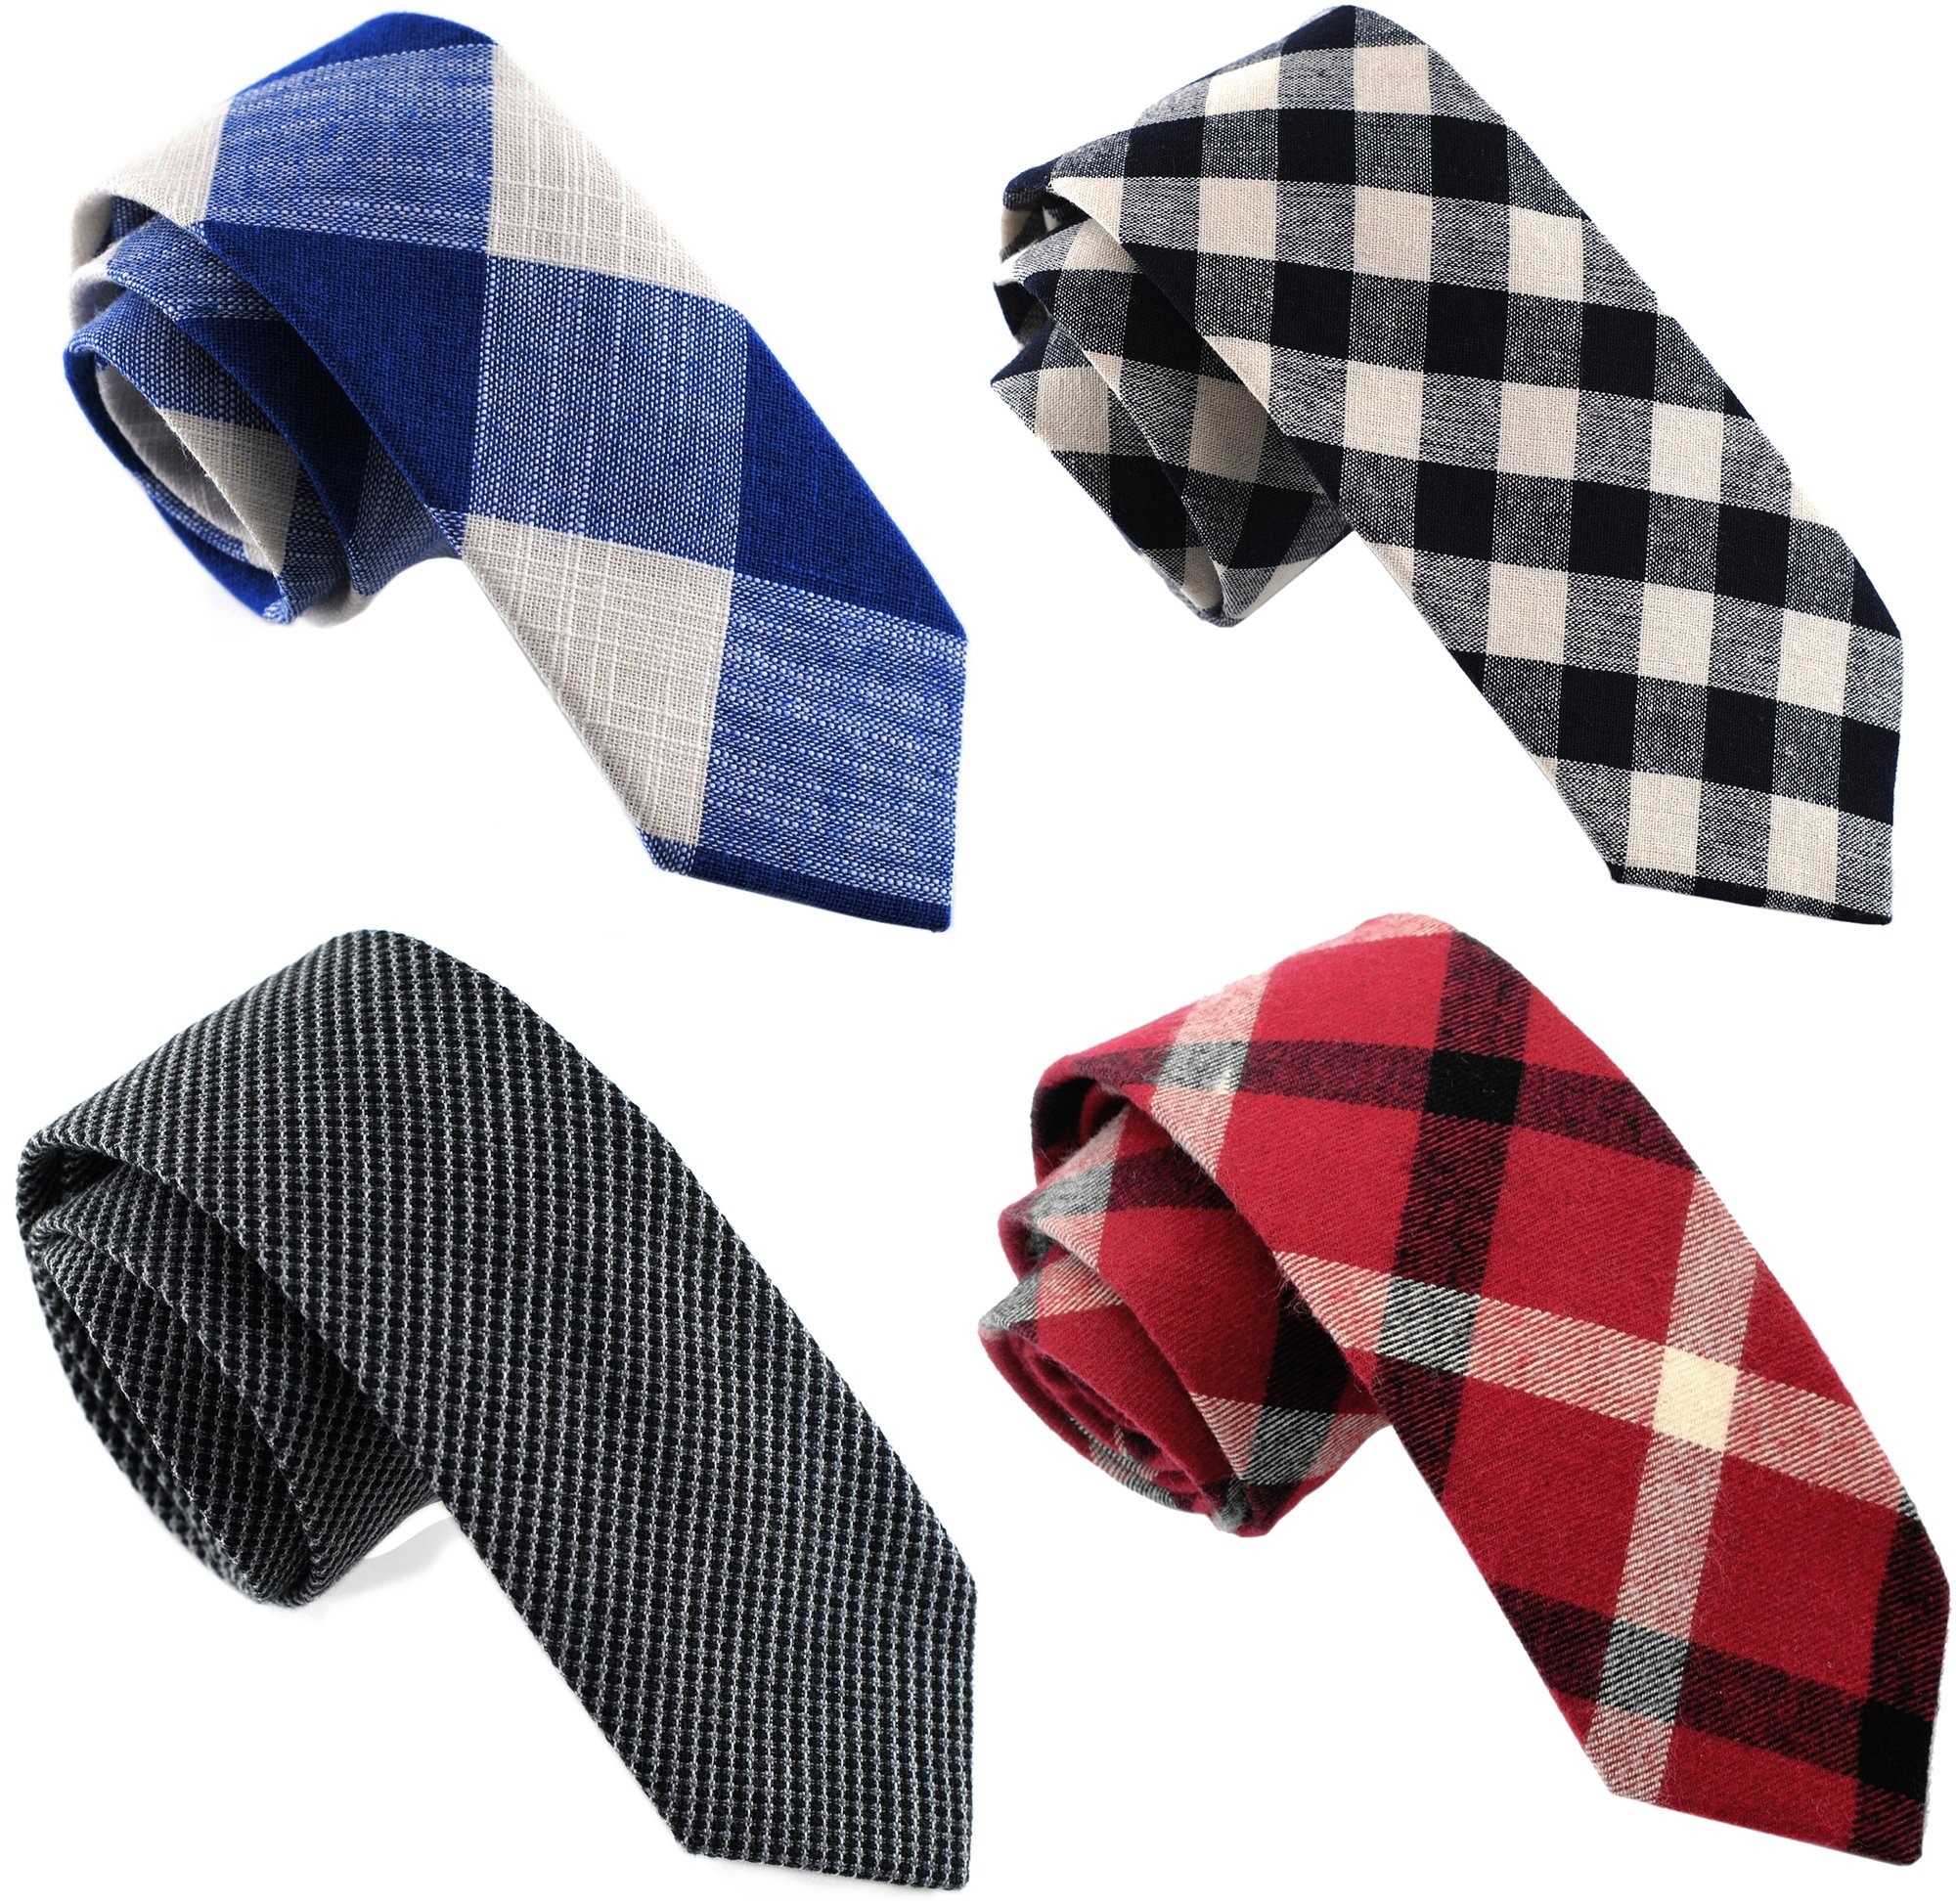 Casual Skinny Neckties for Men Cotton Plaid/Floral Slim Tie TG-003